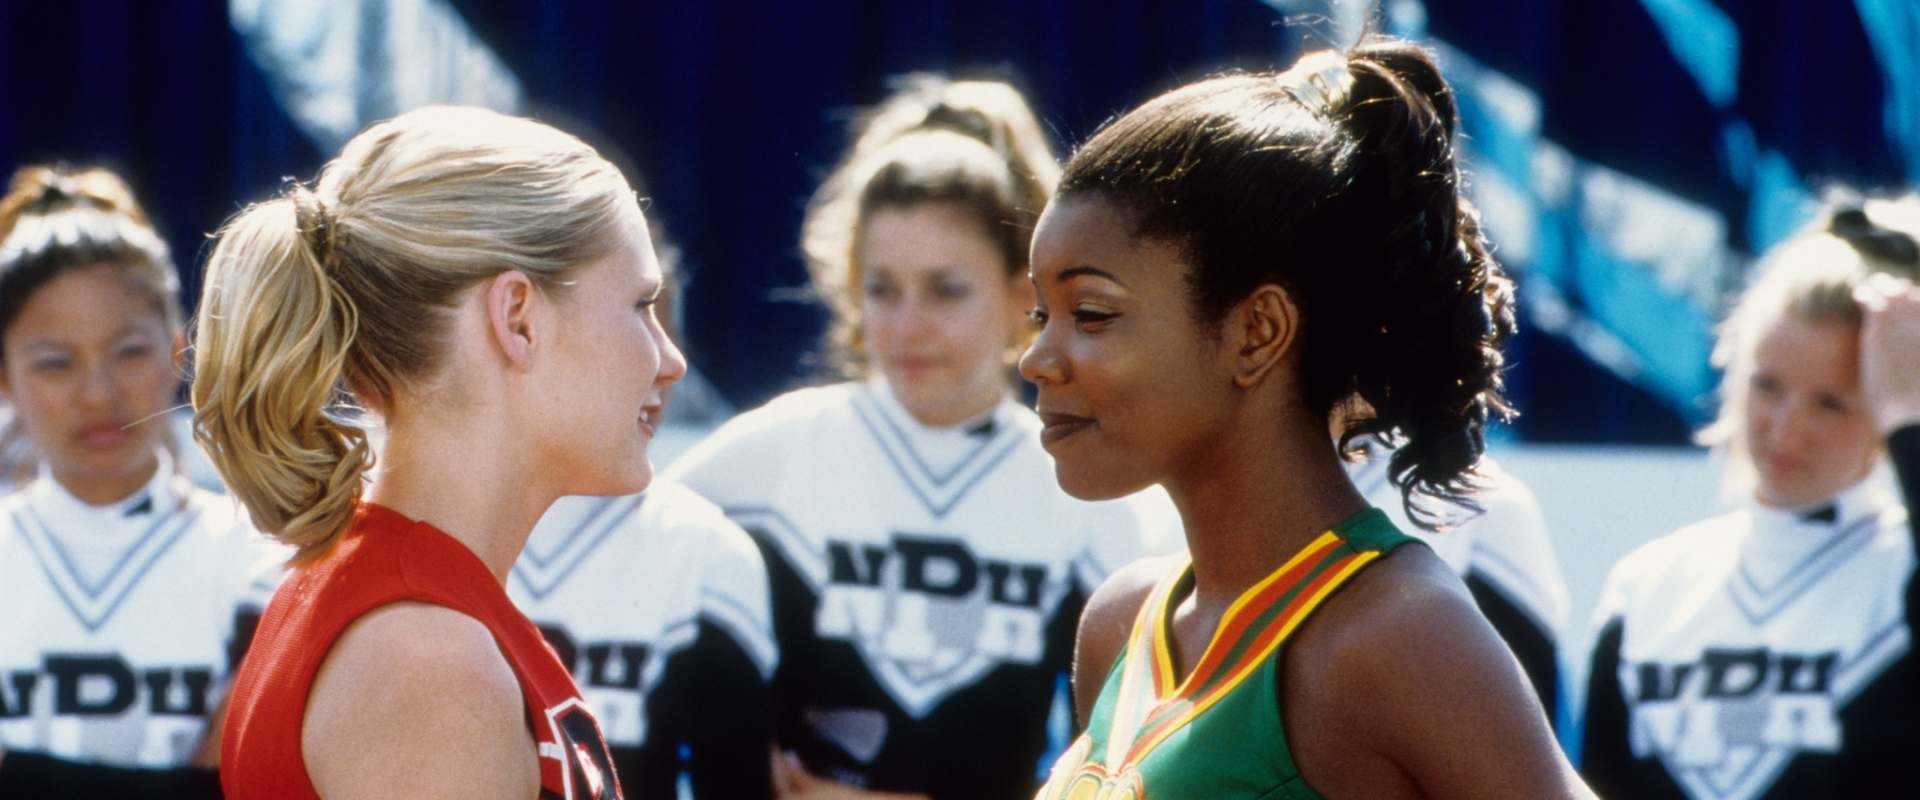 Bring It On background 1